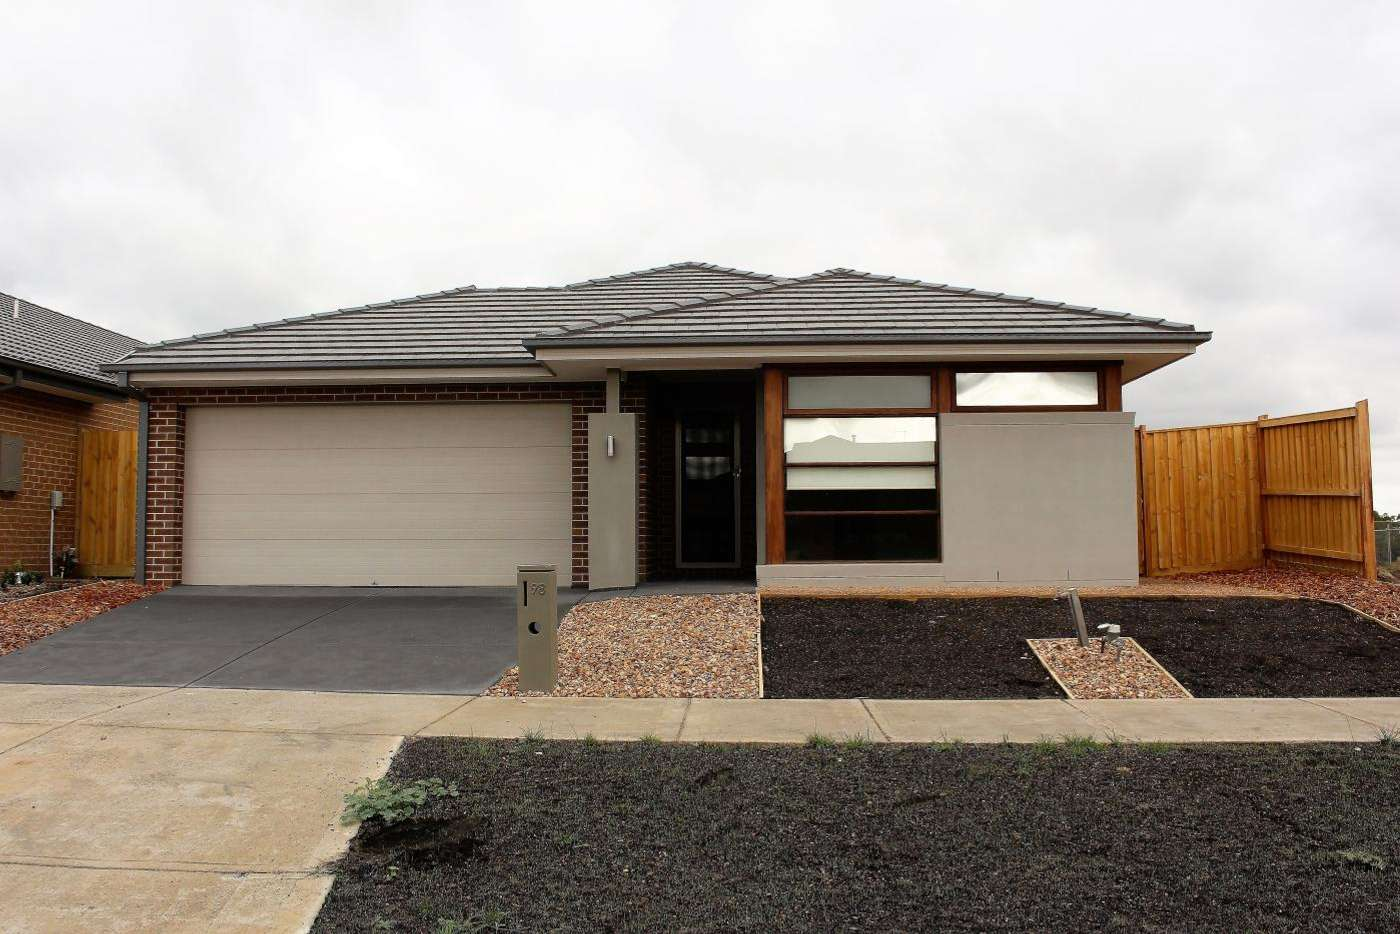 Main view of Homely house listing, 98 Wallaroo Way, Doreen VIC 3754